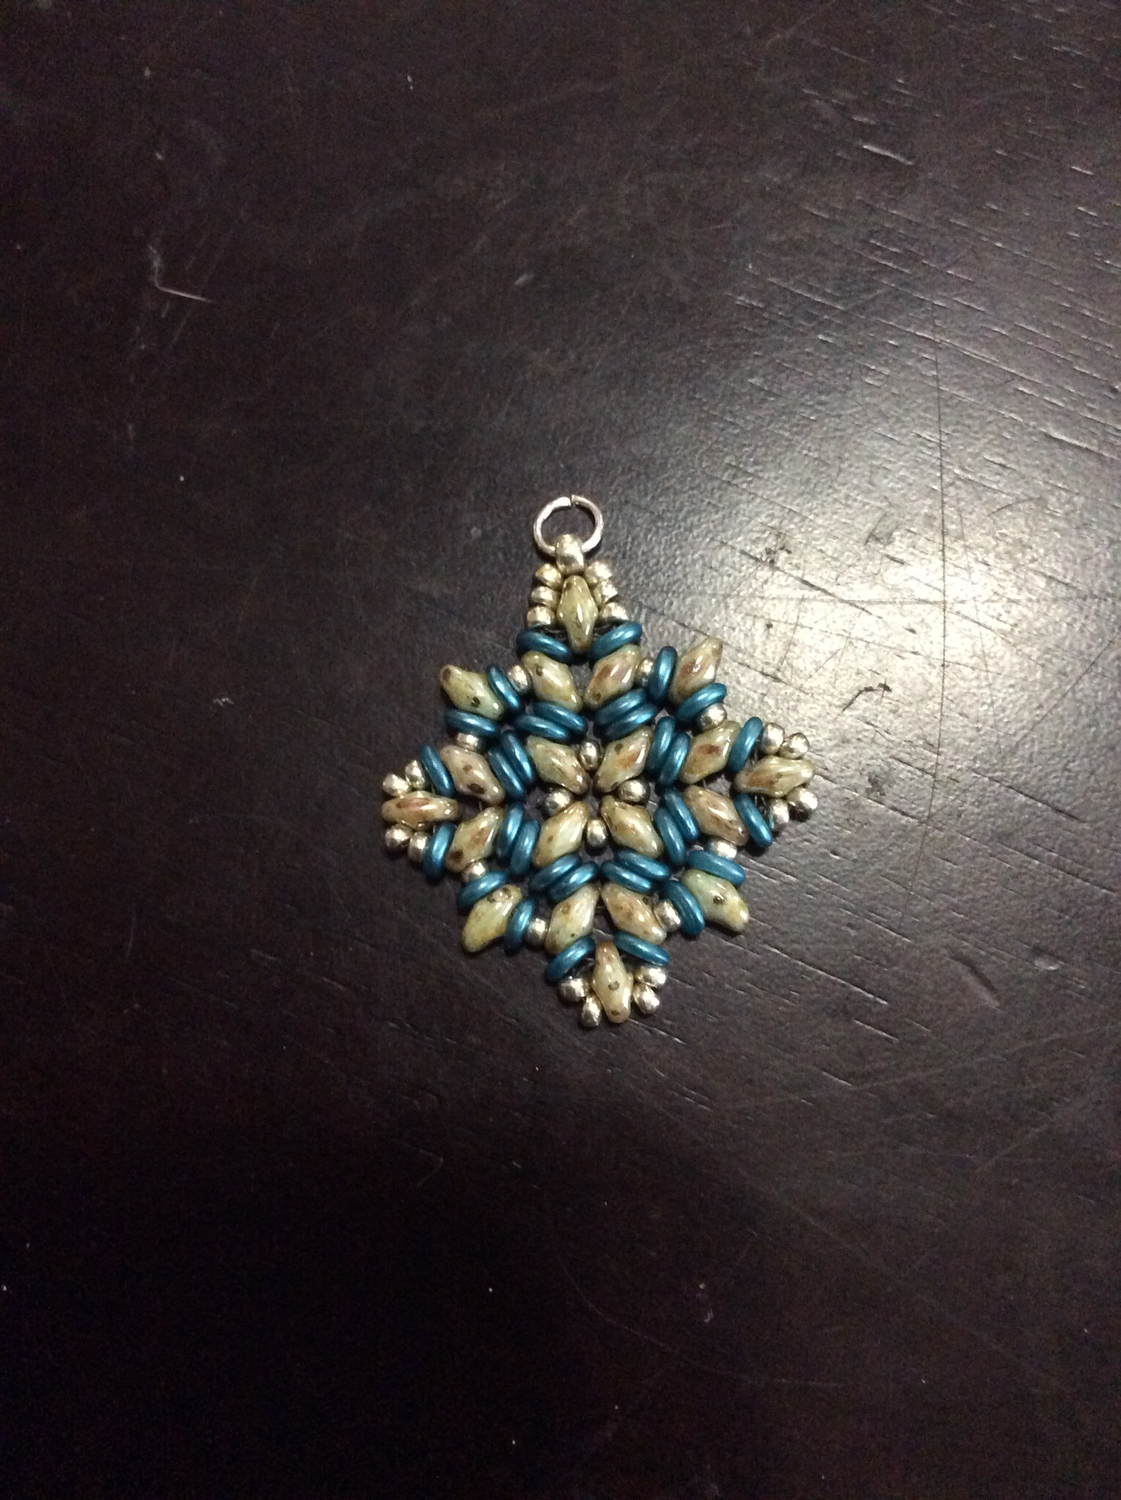 Small beaded charm anointed with sacred Bethesda incantations